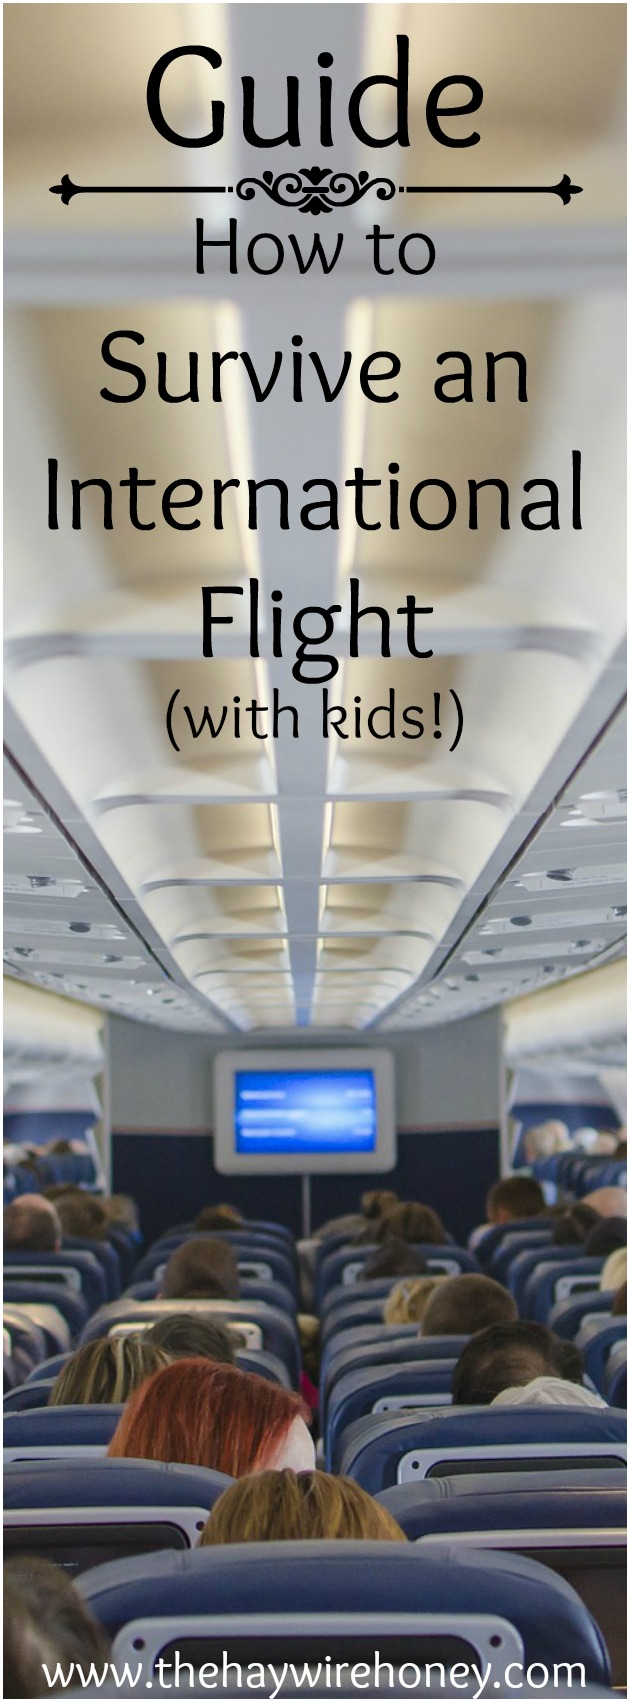 guide-to-survive-an-international-flight-with-kids